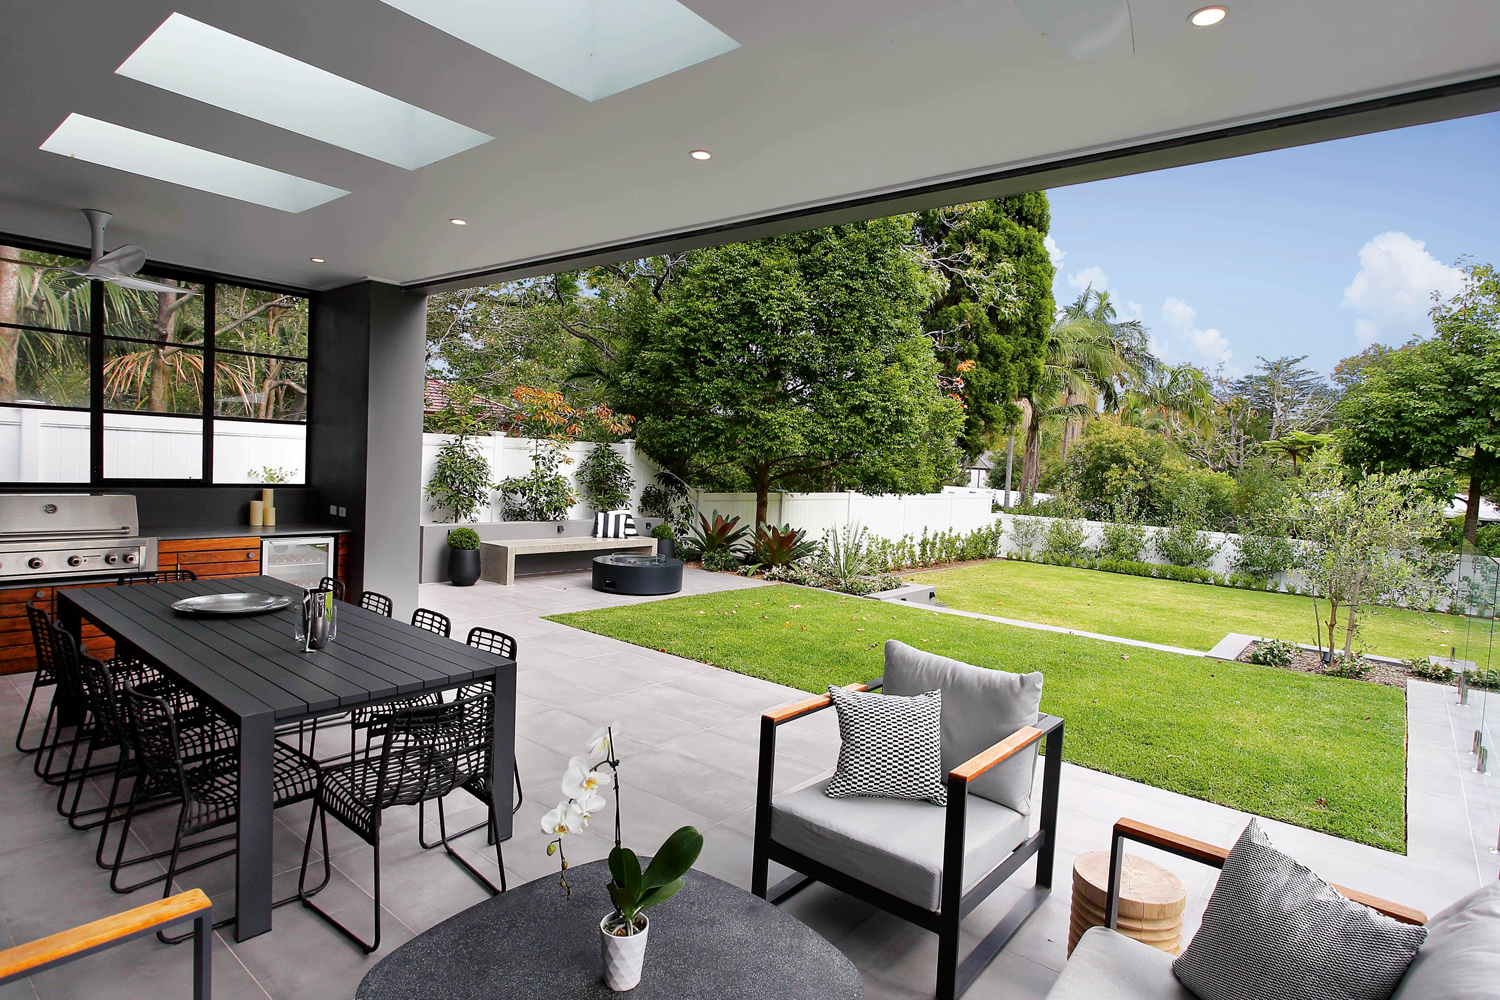 Easy elegance: a relaxed pool and garden area